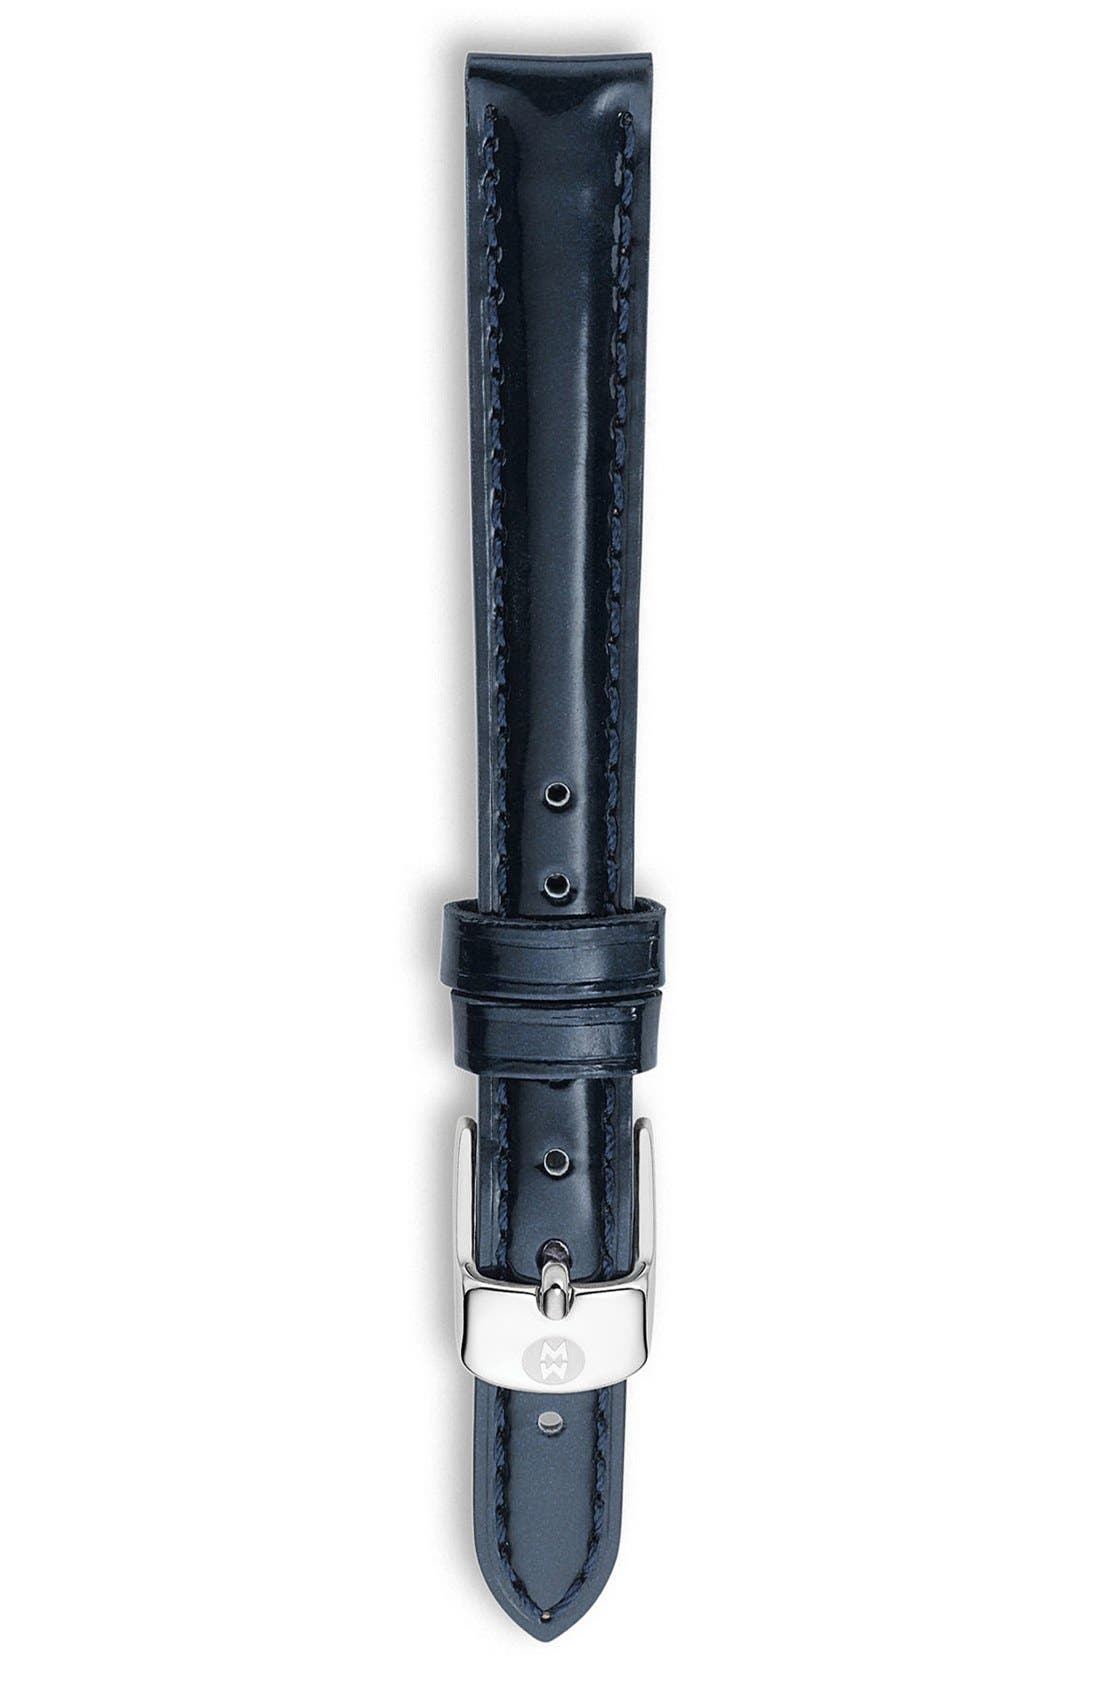 12mm Patent Leather Watch Strap,                             Main thumbnail 1, color,                             410